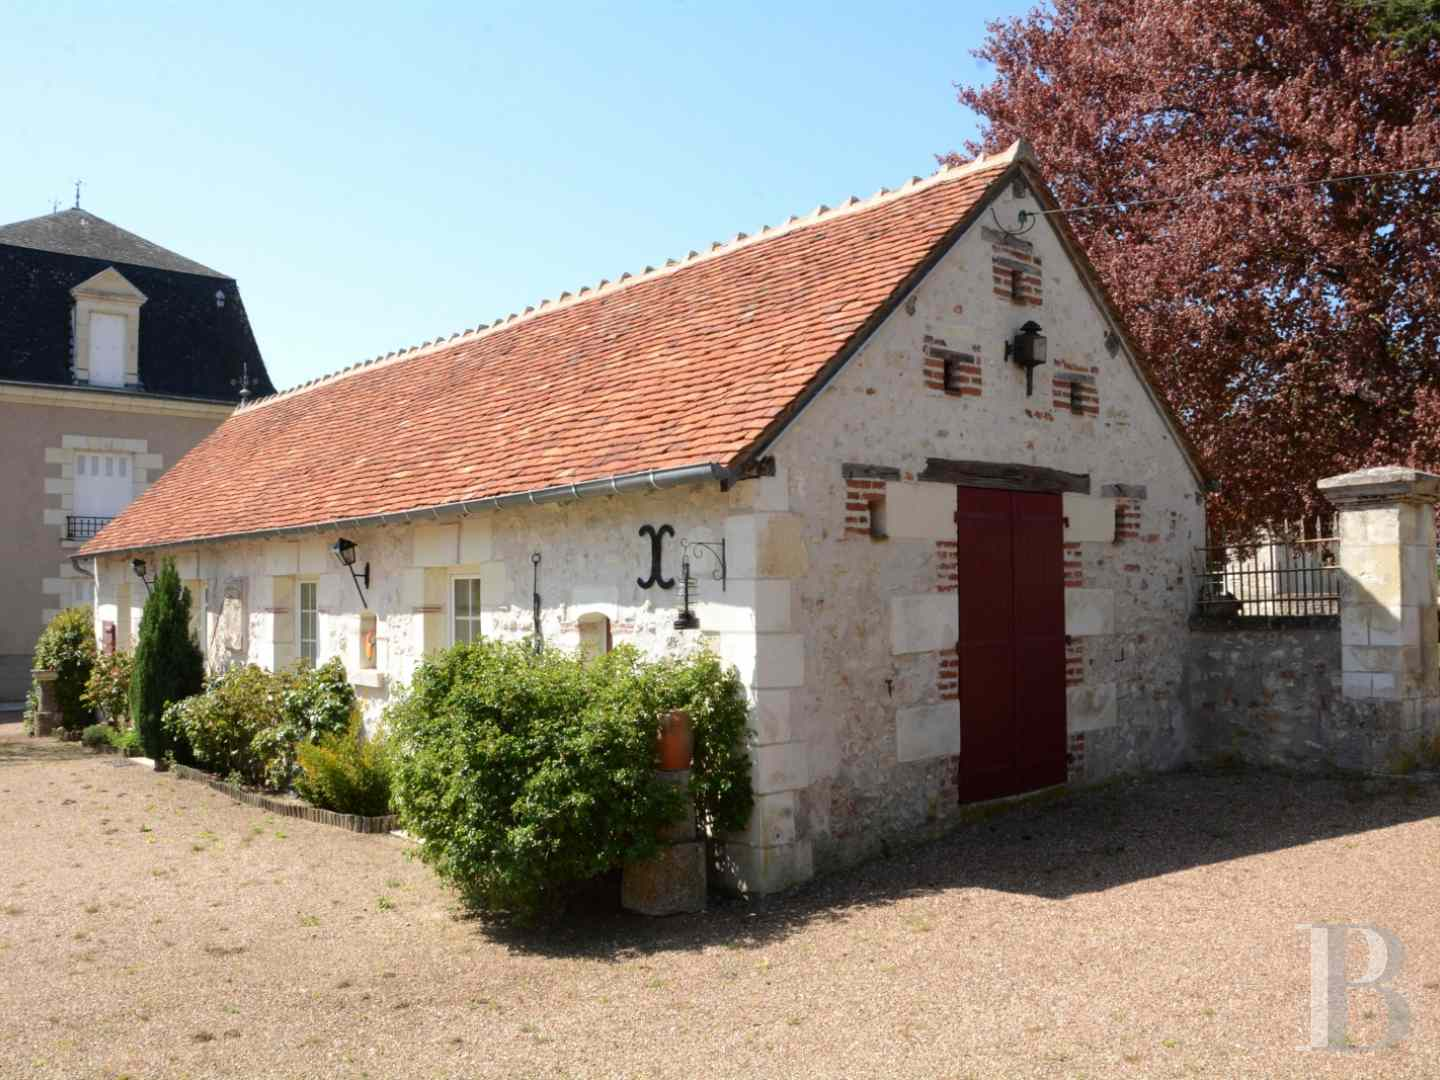 property for sale France center val de loire hunting grounds - 10 zoom